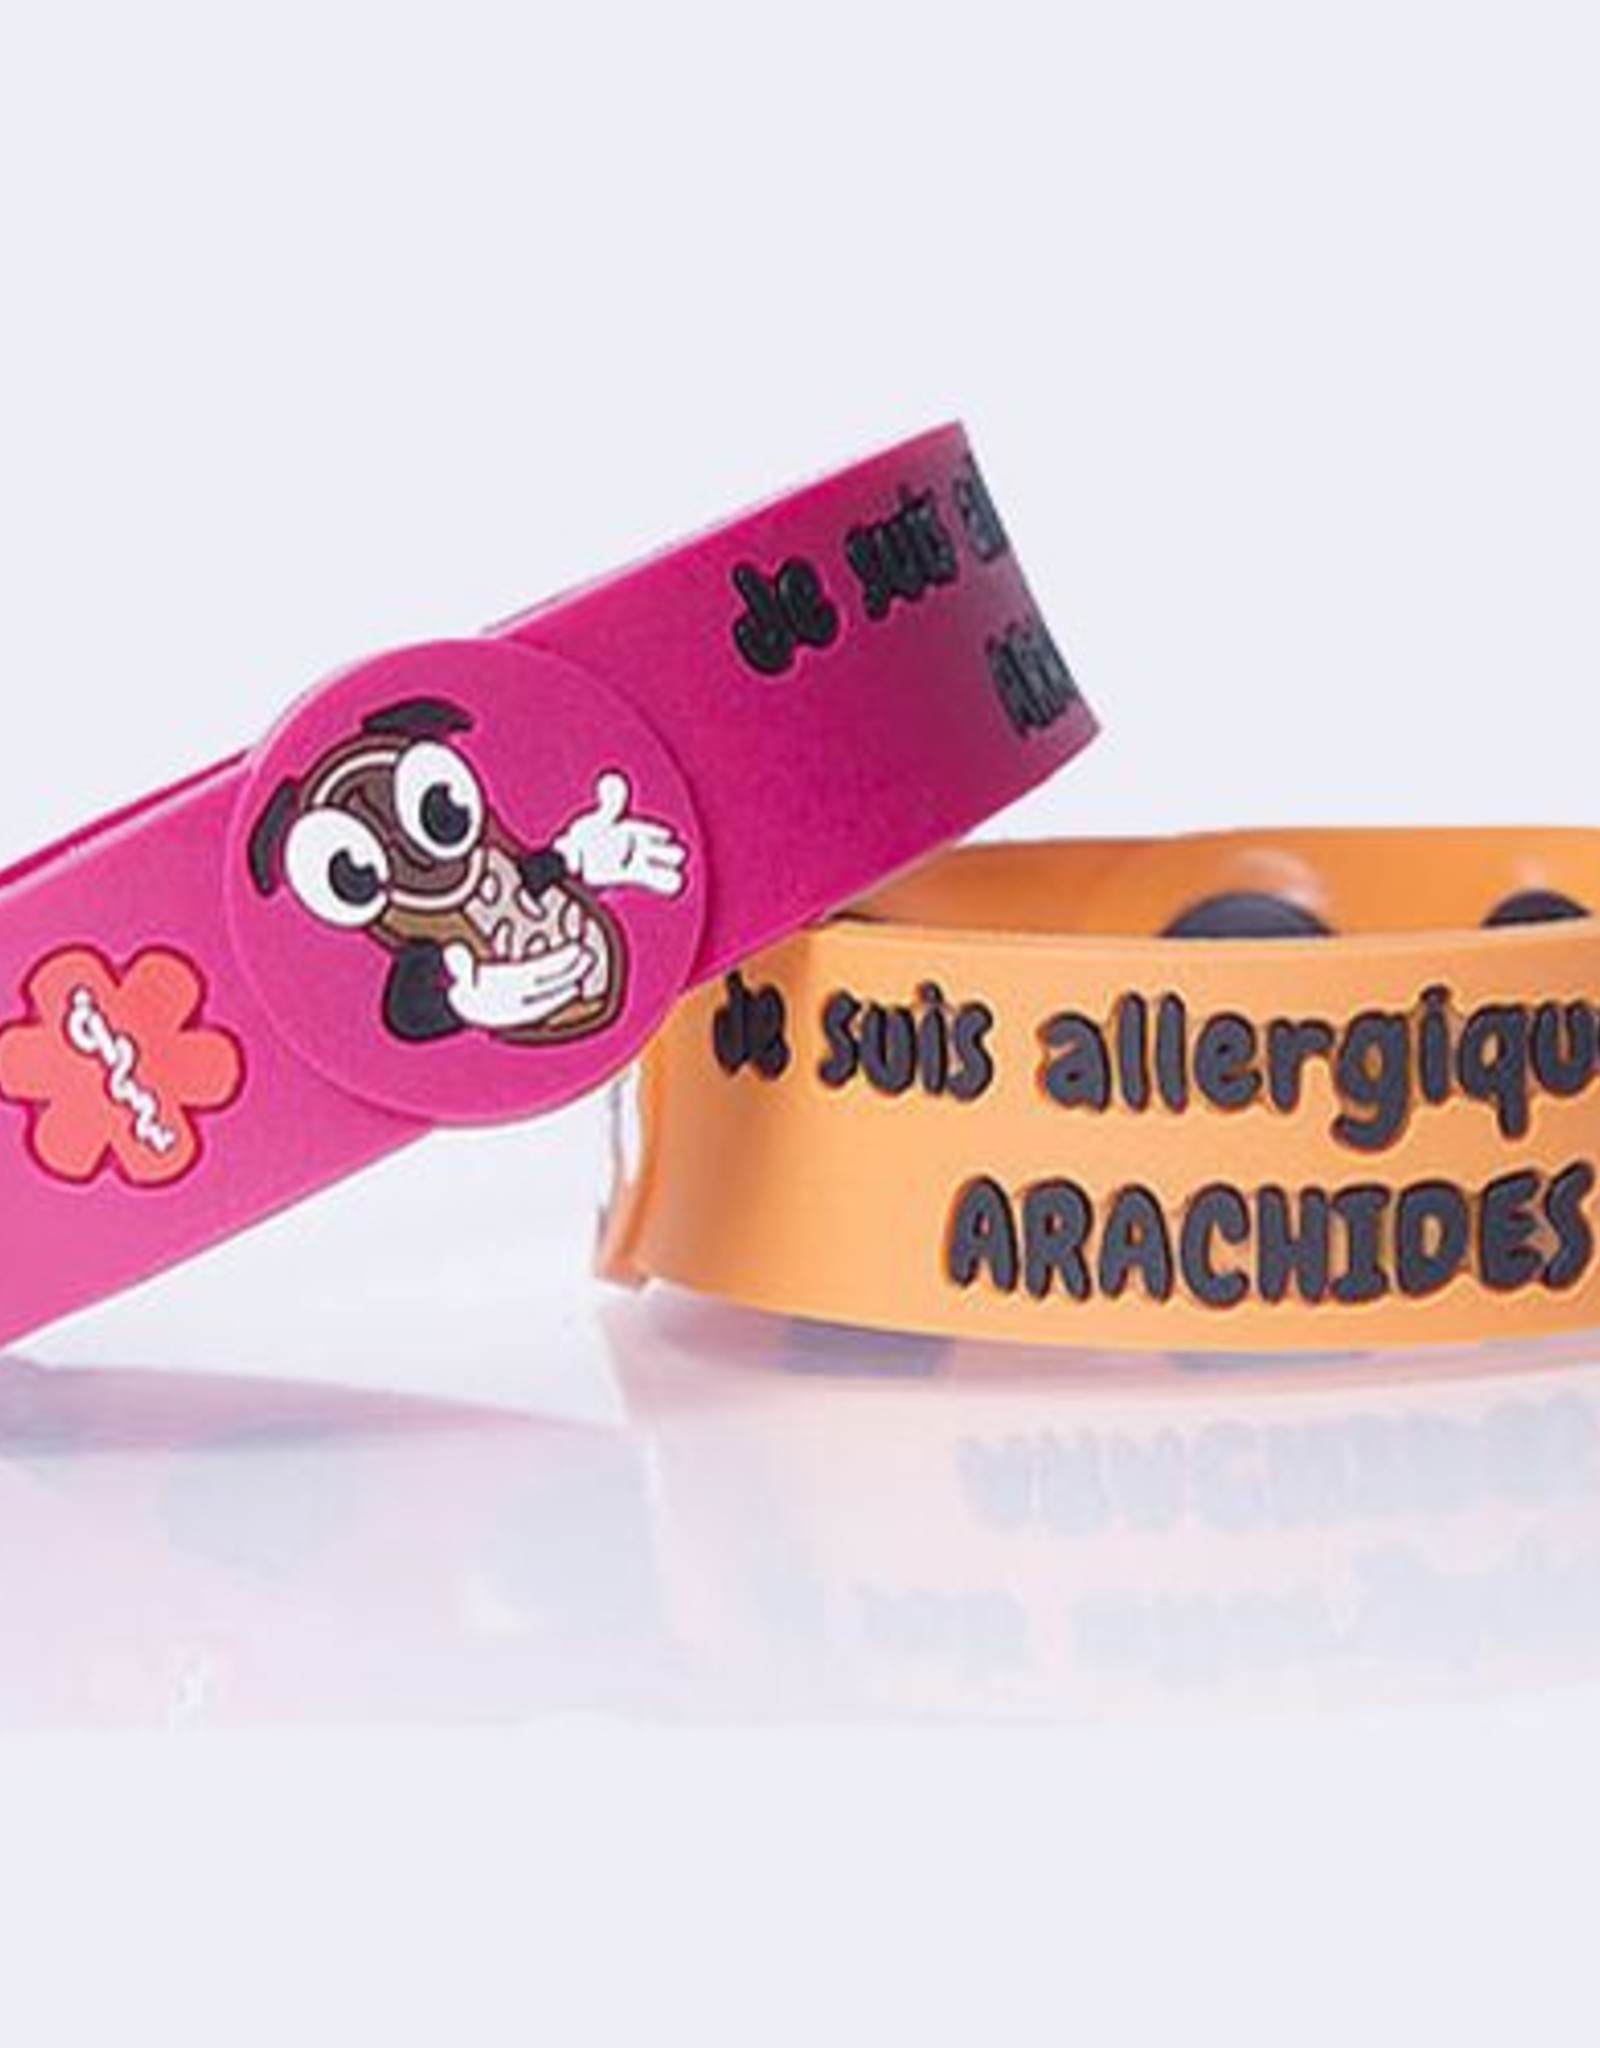 Secallergies Bracelet d'allergie : Arachides